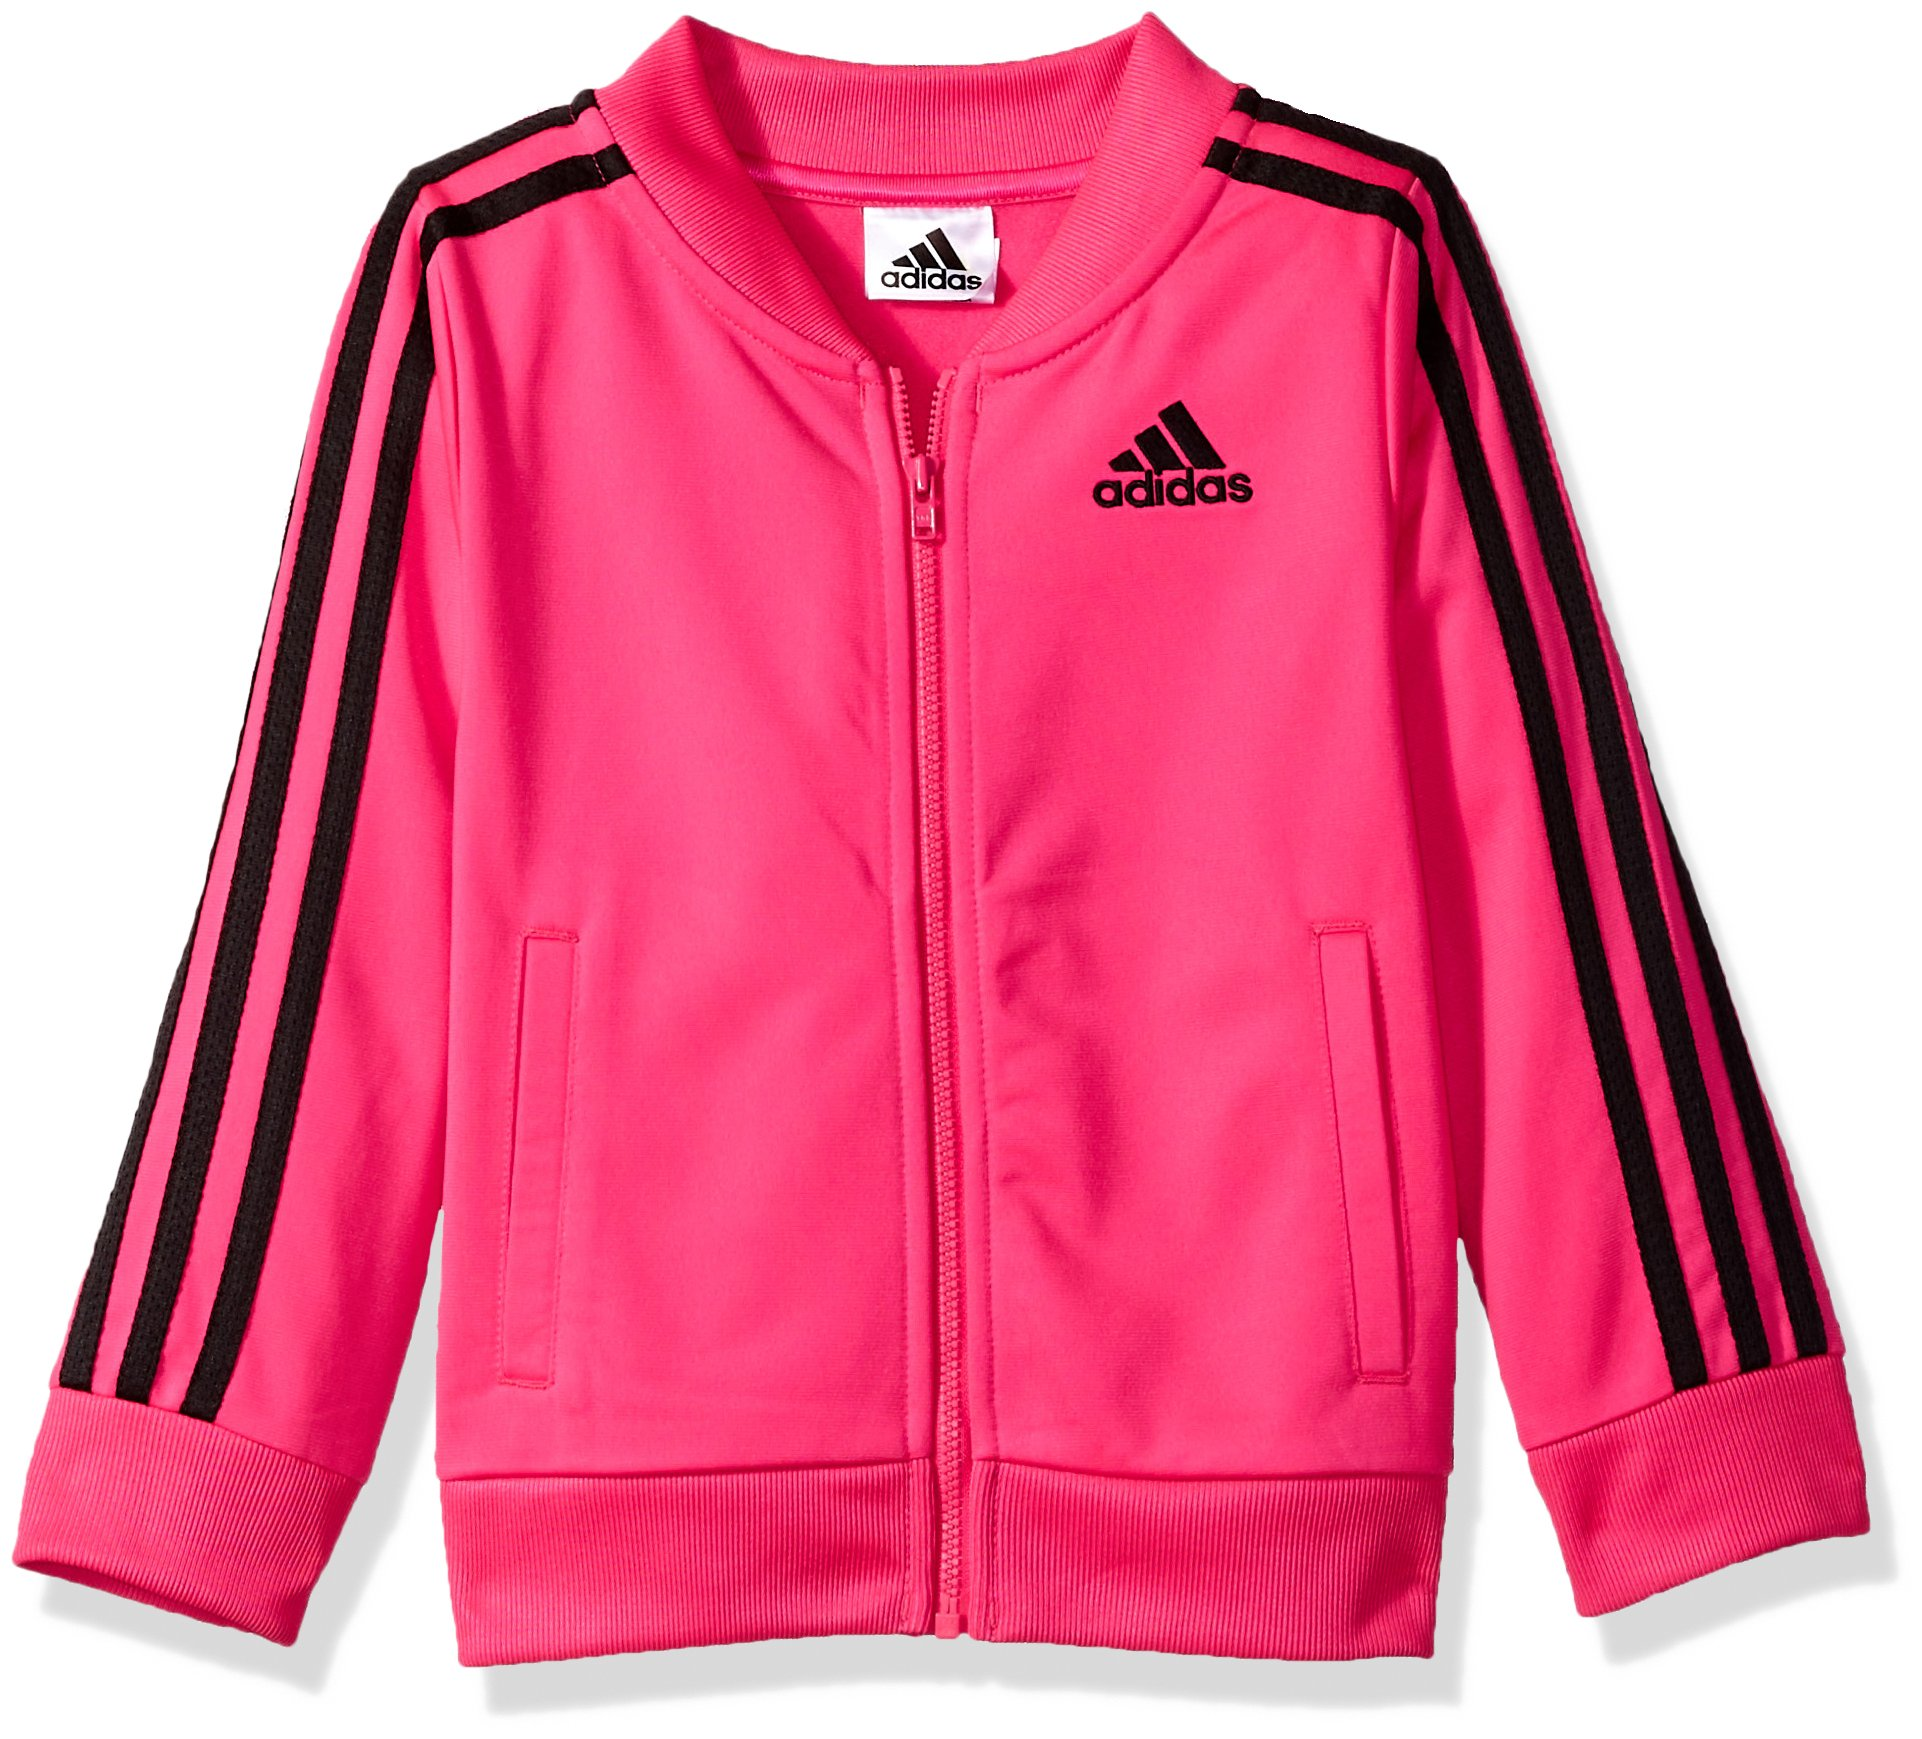 adidas Girls' Big Tricot Bomber Track Jacket, Shock Pink, Small by adidas